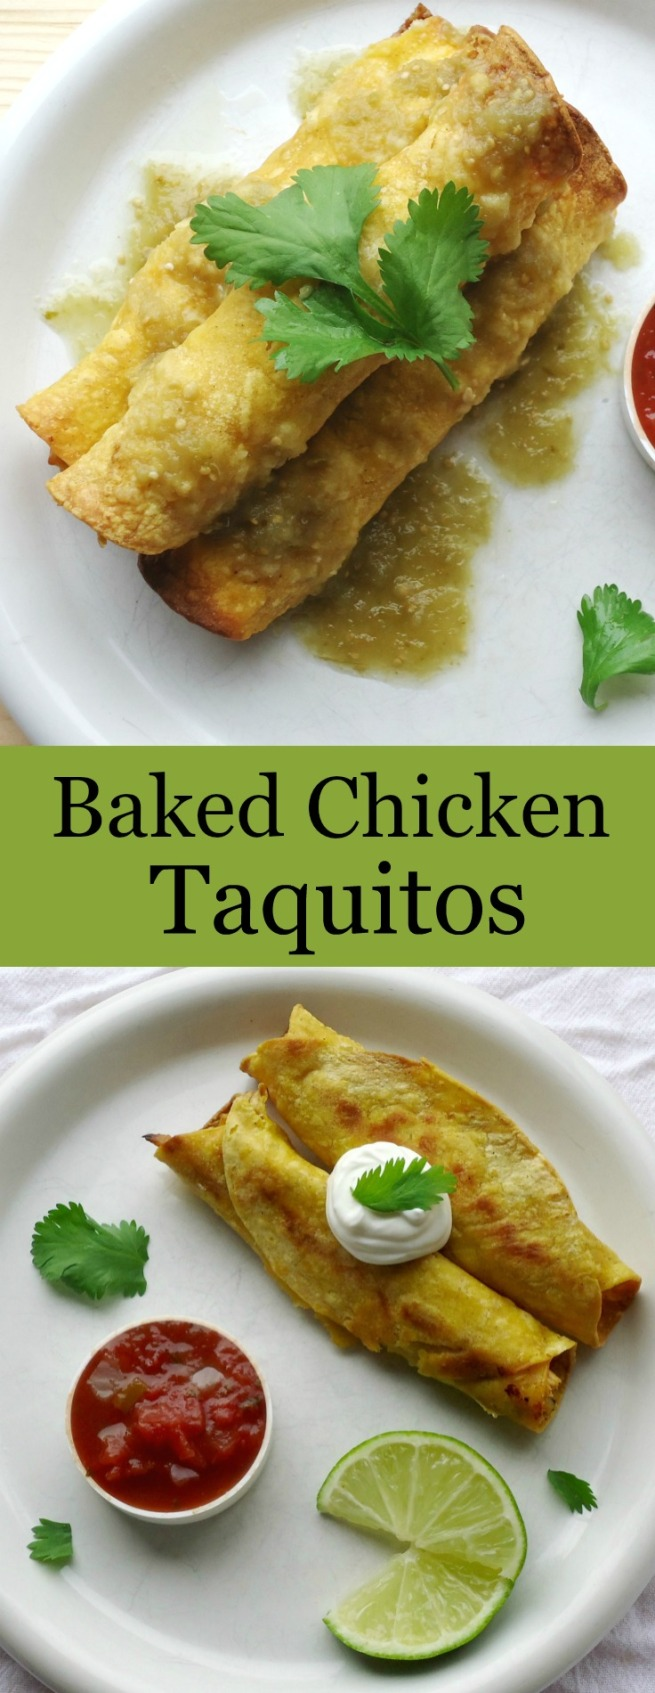 Baked Chicken Taquitos -- Unwed Housewife